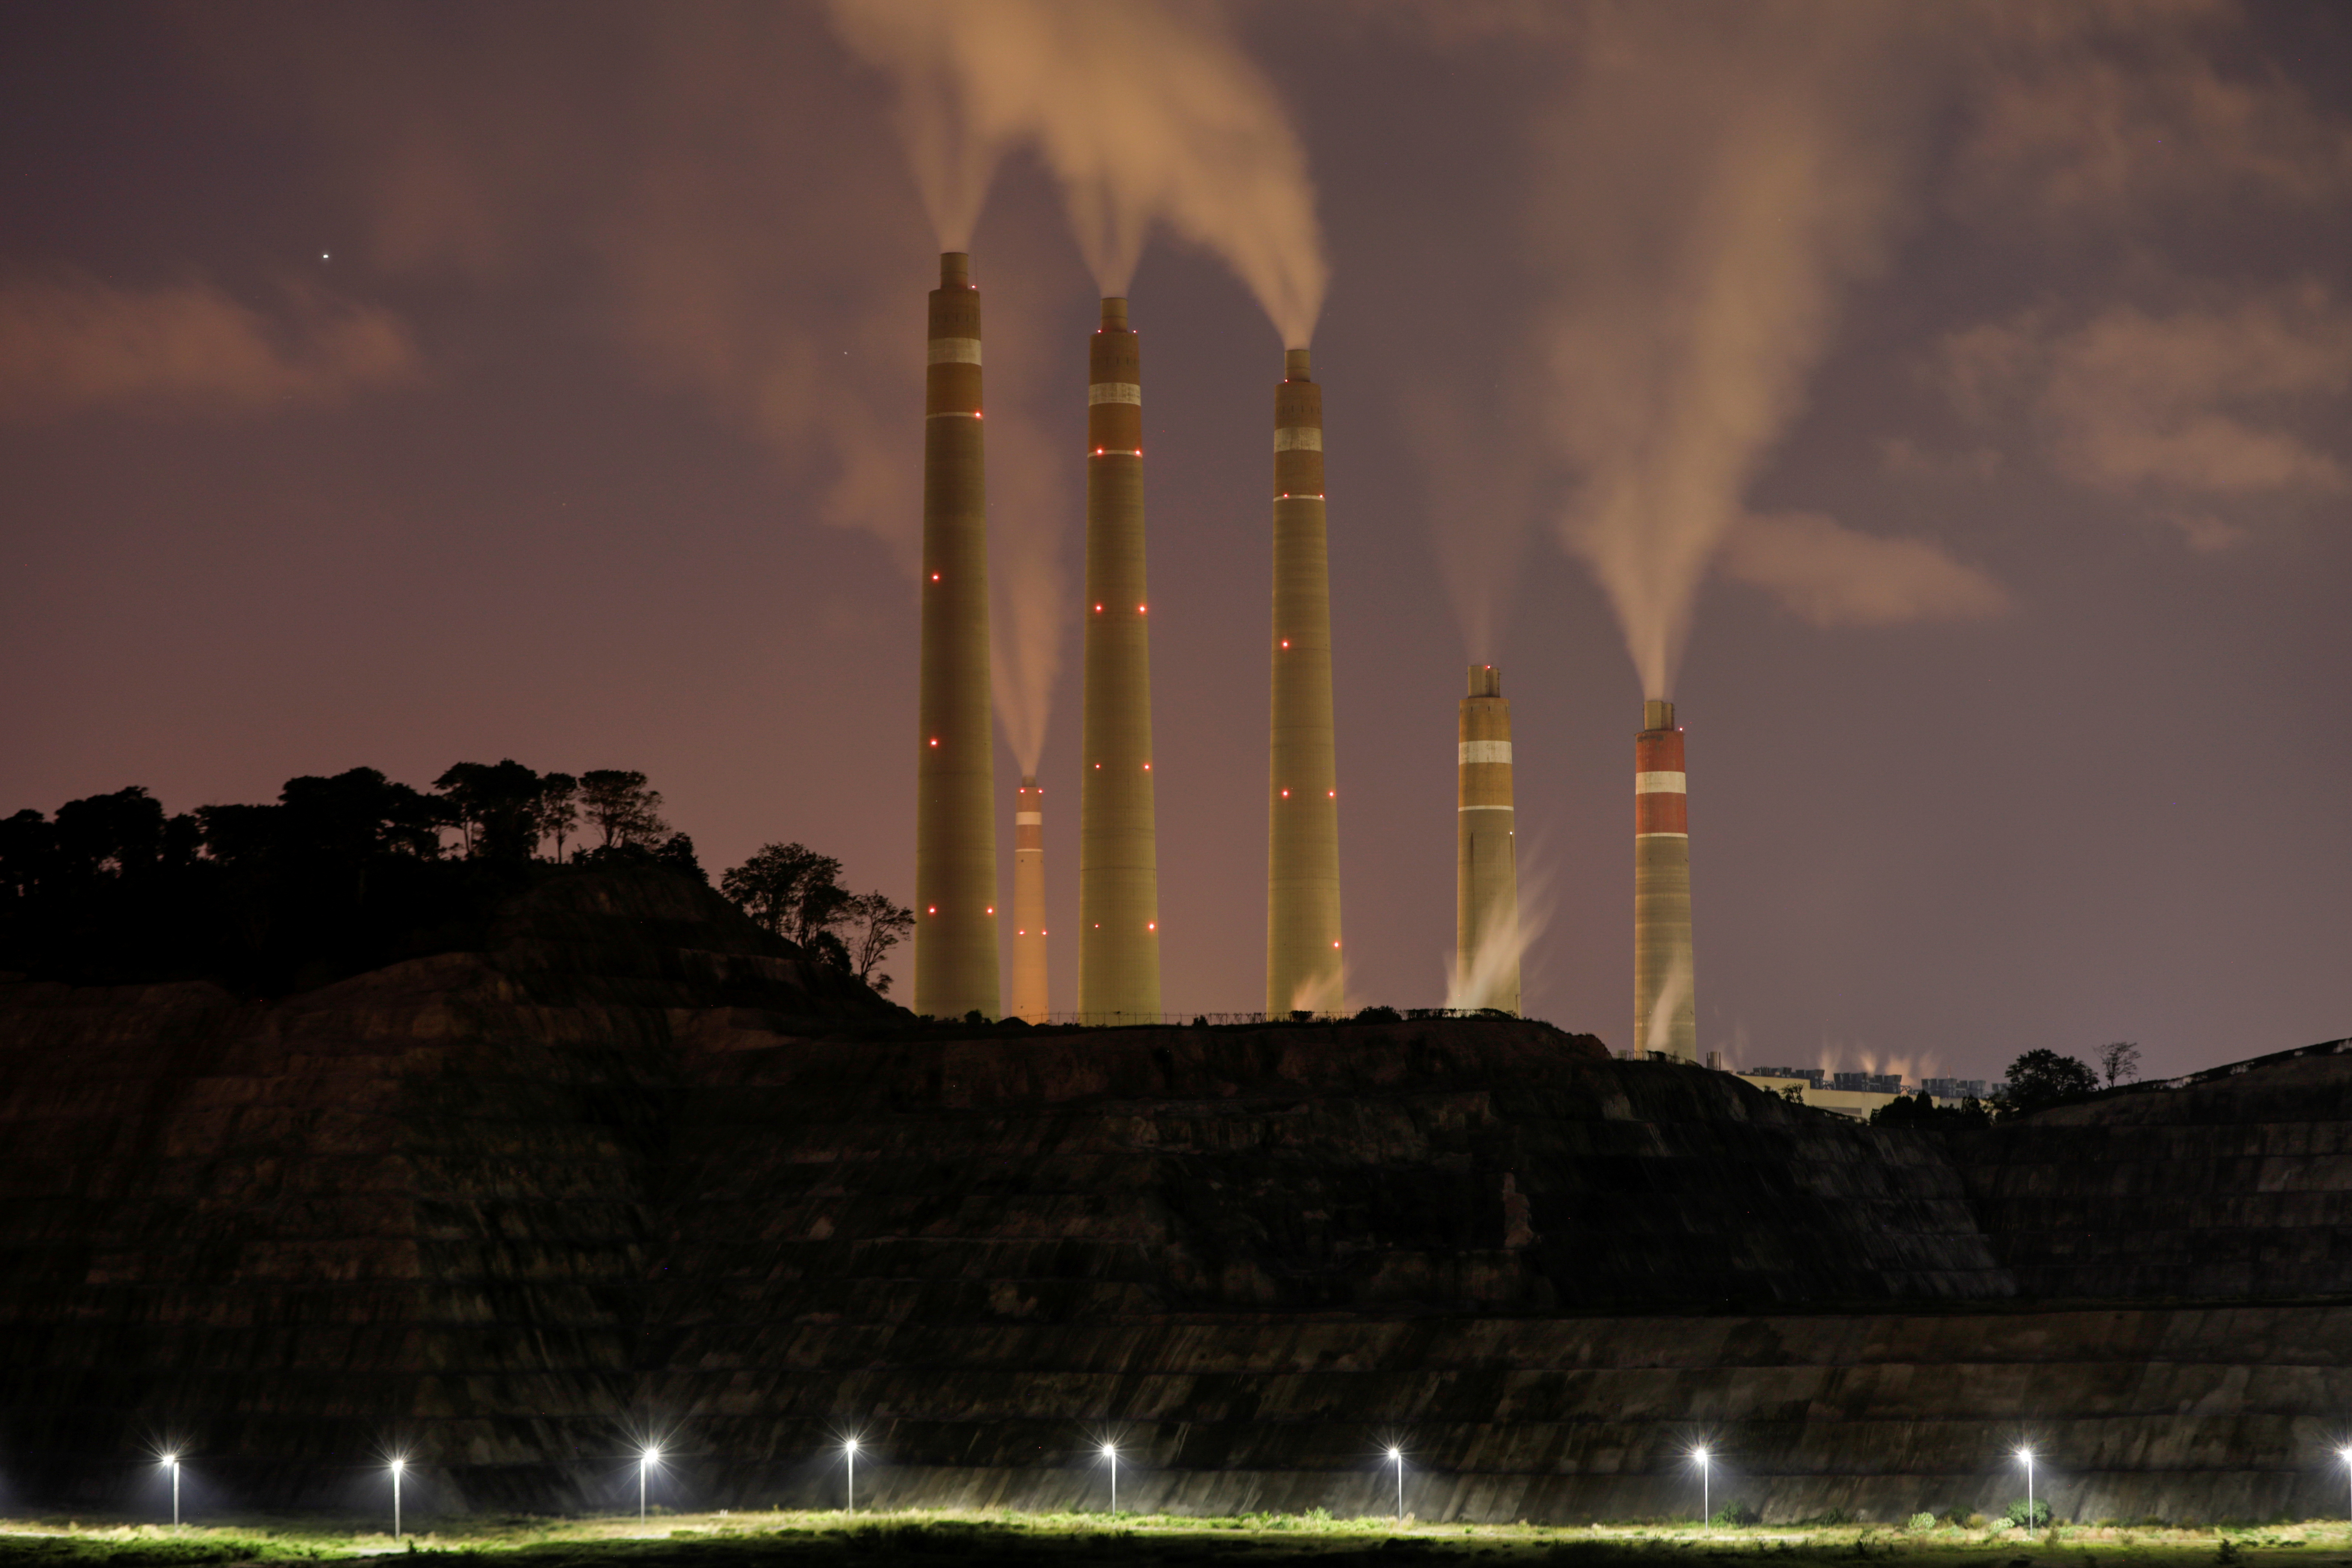 Smoke and steam billows from the coal-fired power plant owned by Indonesia Power, next to an area for Java 9 and 10 Coal-Fired Steam Power Plant Project in Suralaya, Banten province, Indonesia, July 11, 2020. Picture taken July 11, 2020. REUTERS/Willy Kurniawan/File Photo